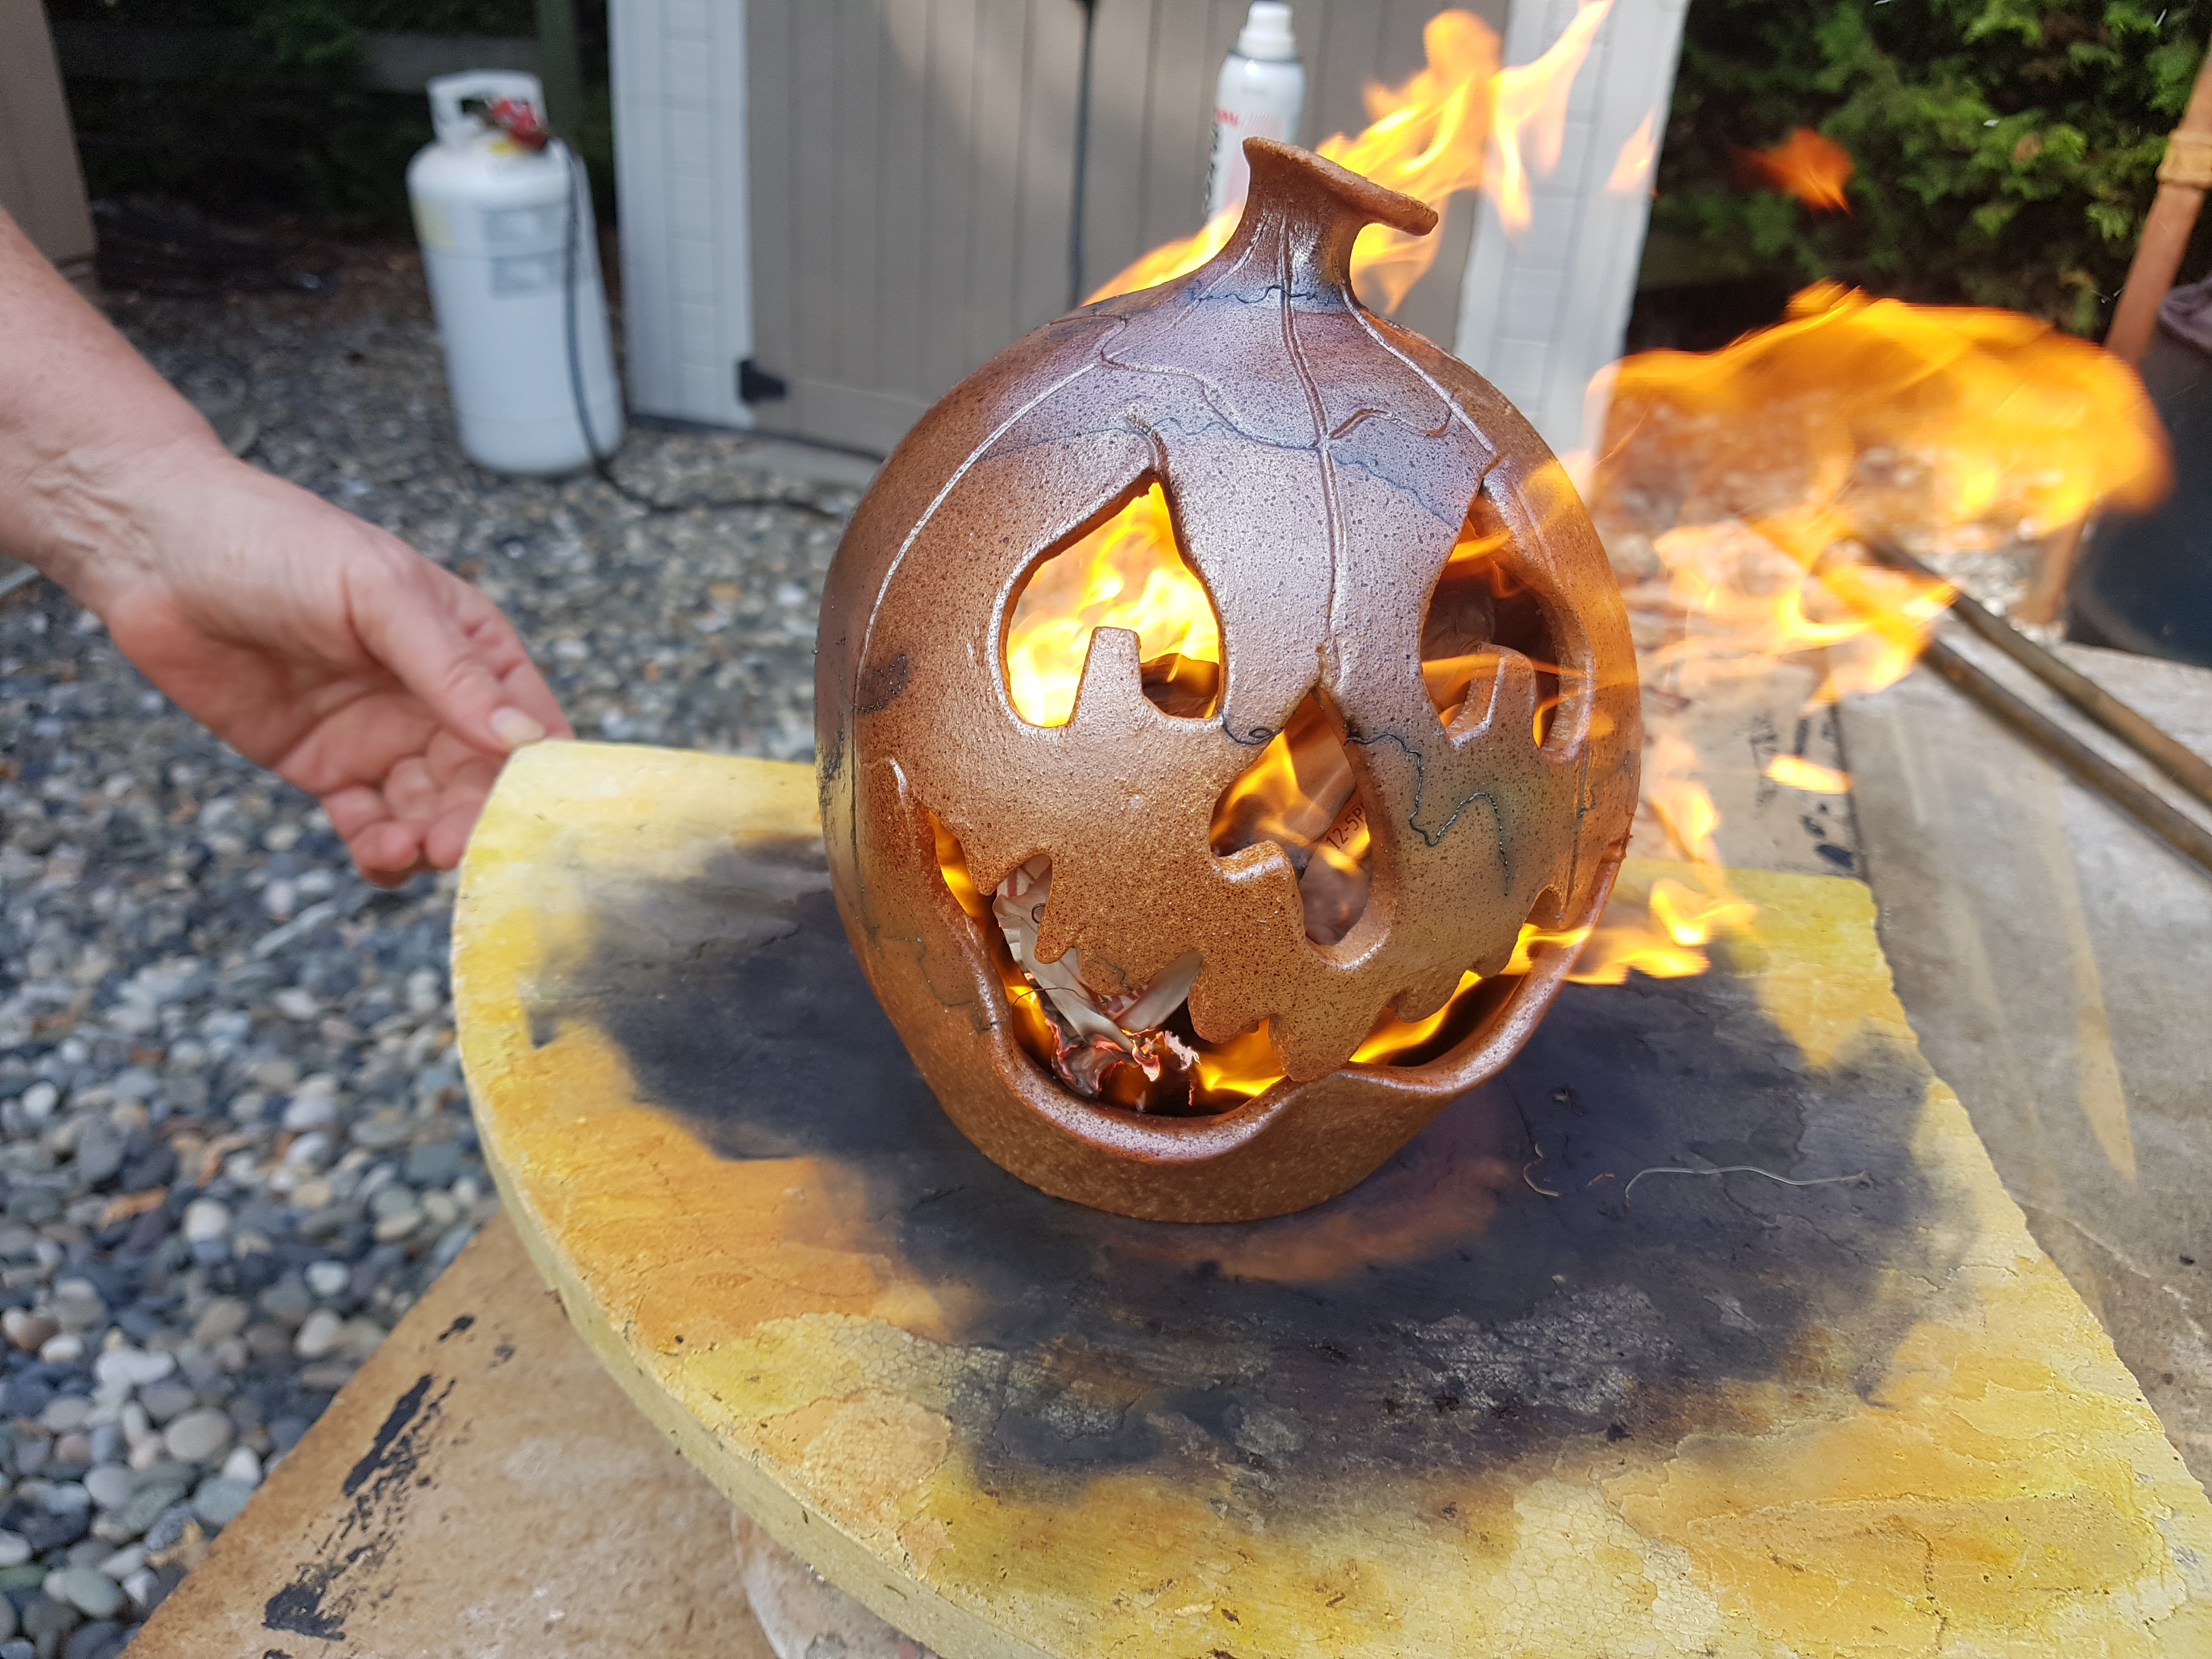 Halloween Horse Hair Handcrafted Pumpkin by Doing Earth Pottery